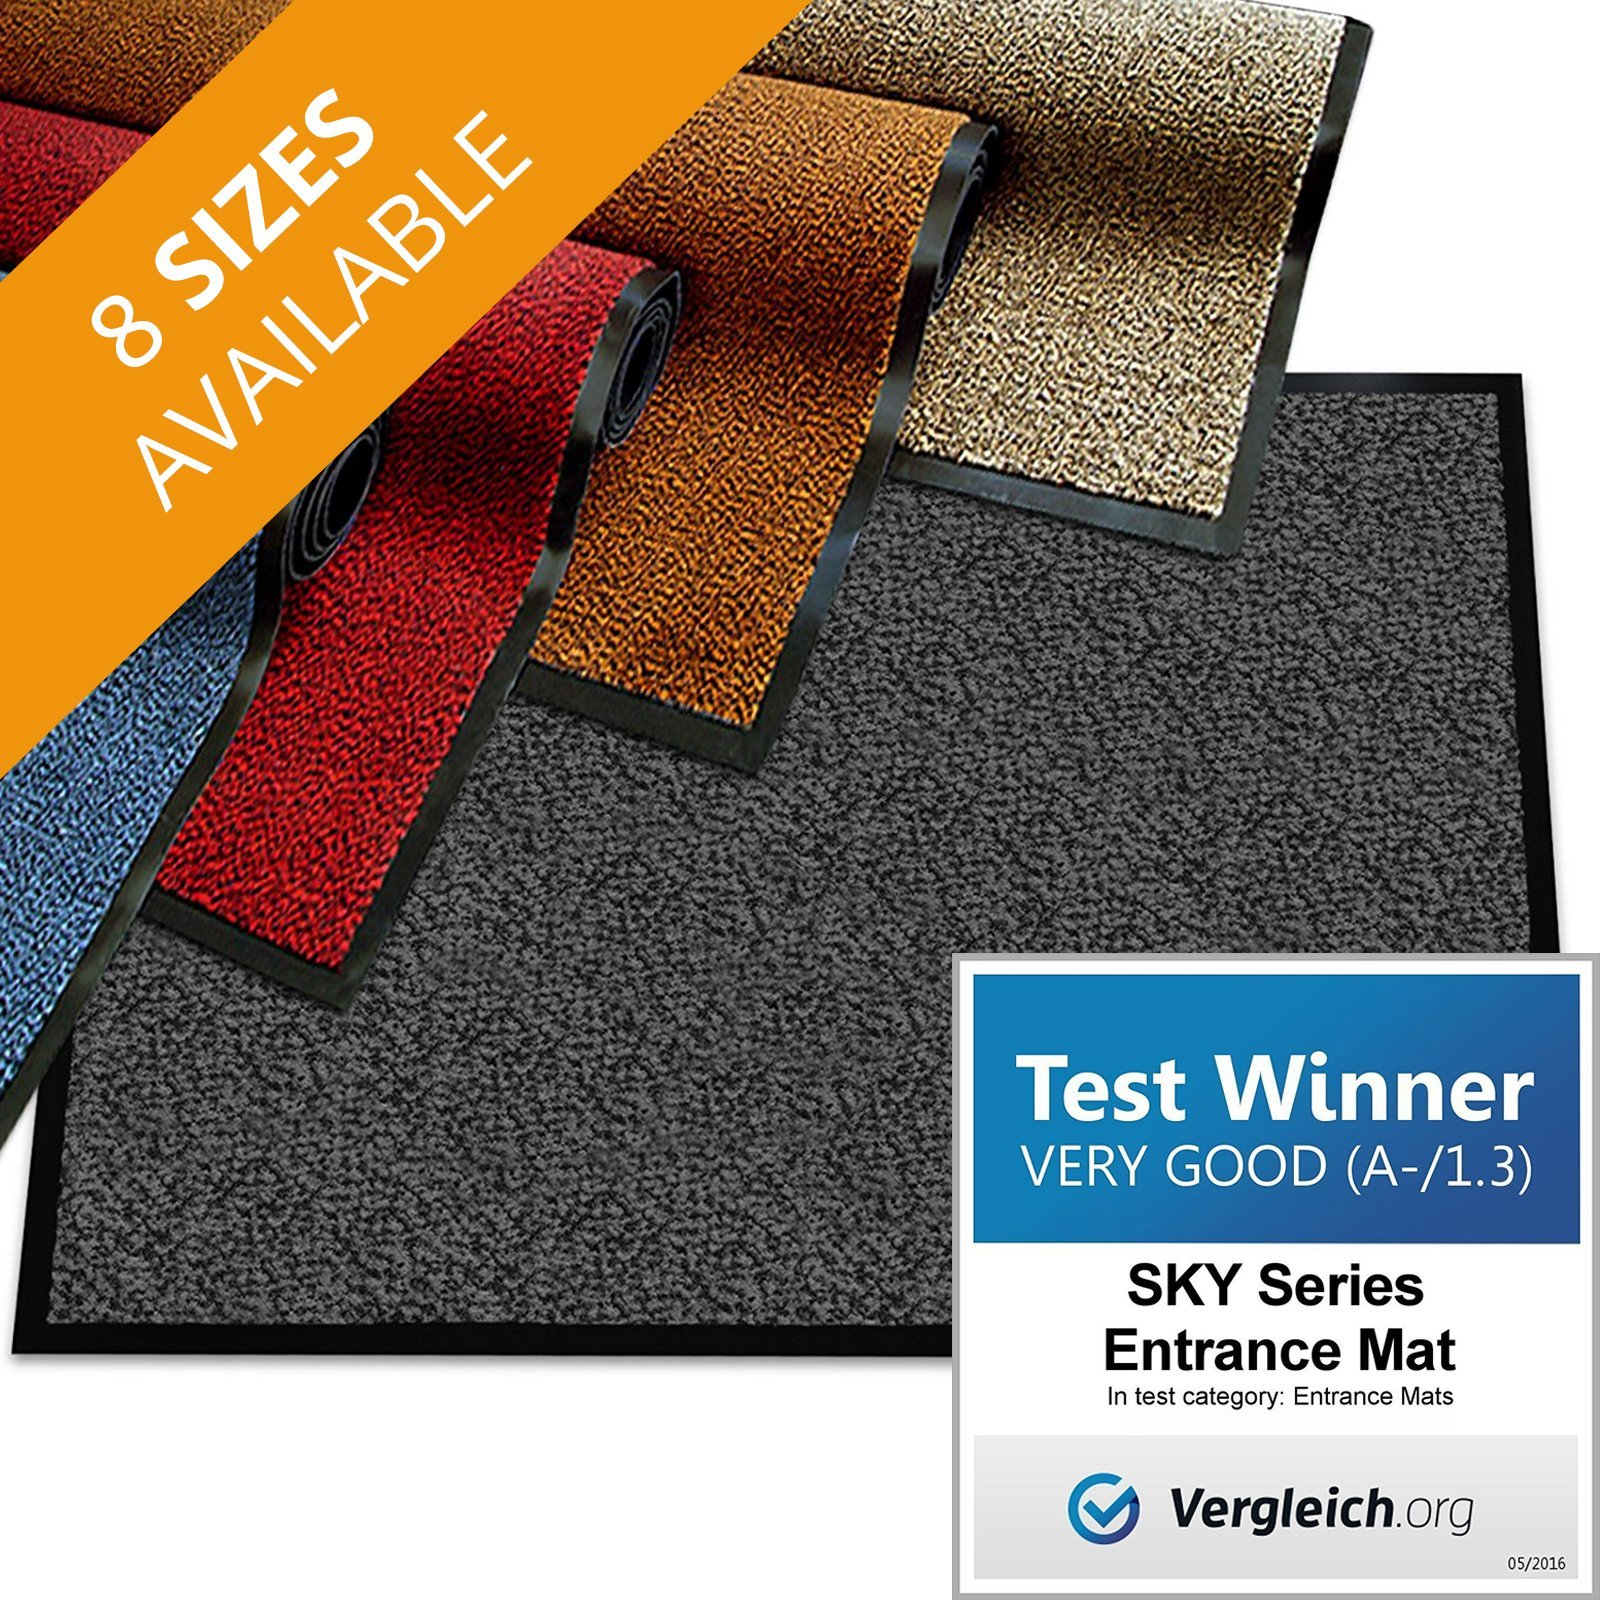 casa pura Premium Entry Mat | Entrance Mat Comparison Test Score: Very Good (A-/1.3) | Ideal as Front Door Mat or Entry Rug | Charcoal Gray - 36'' x 60''